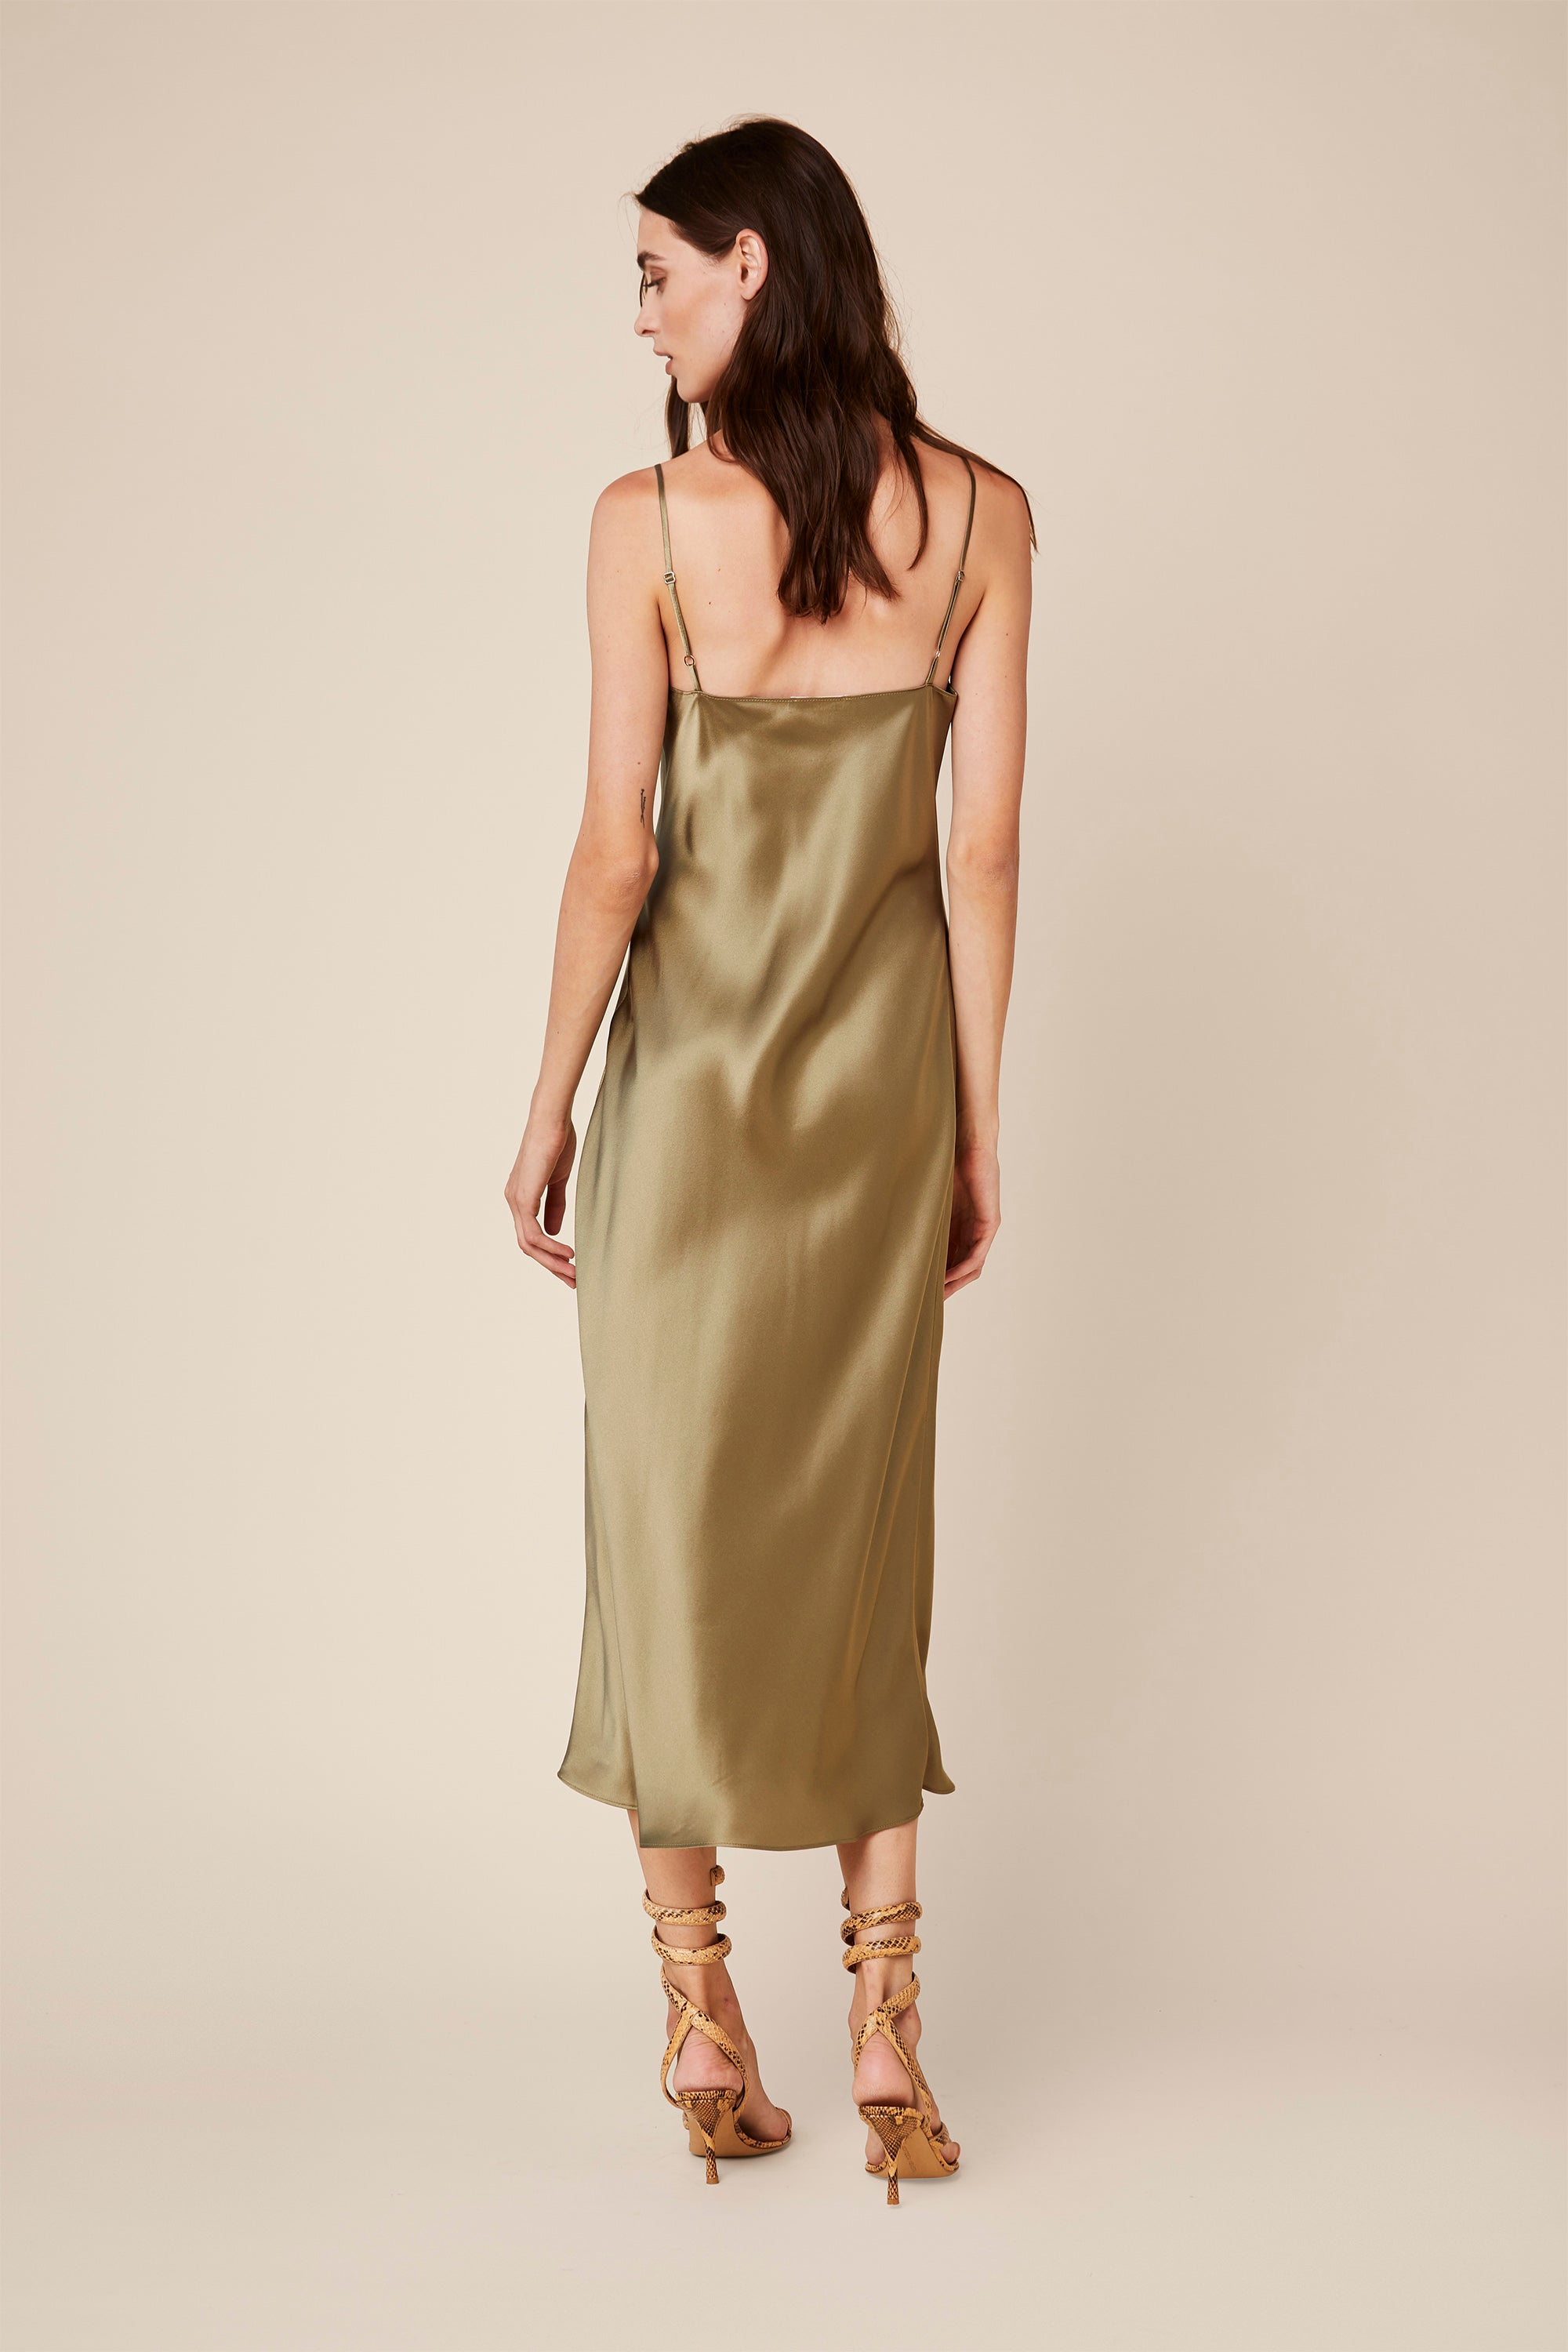 TAYLOR SILK DRESS | JUNIPER - Final Sale